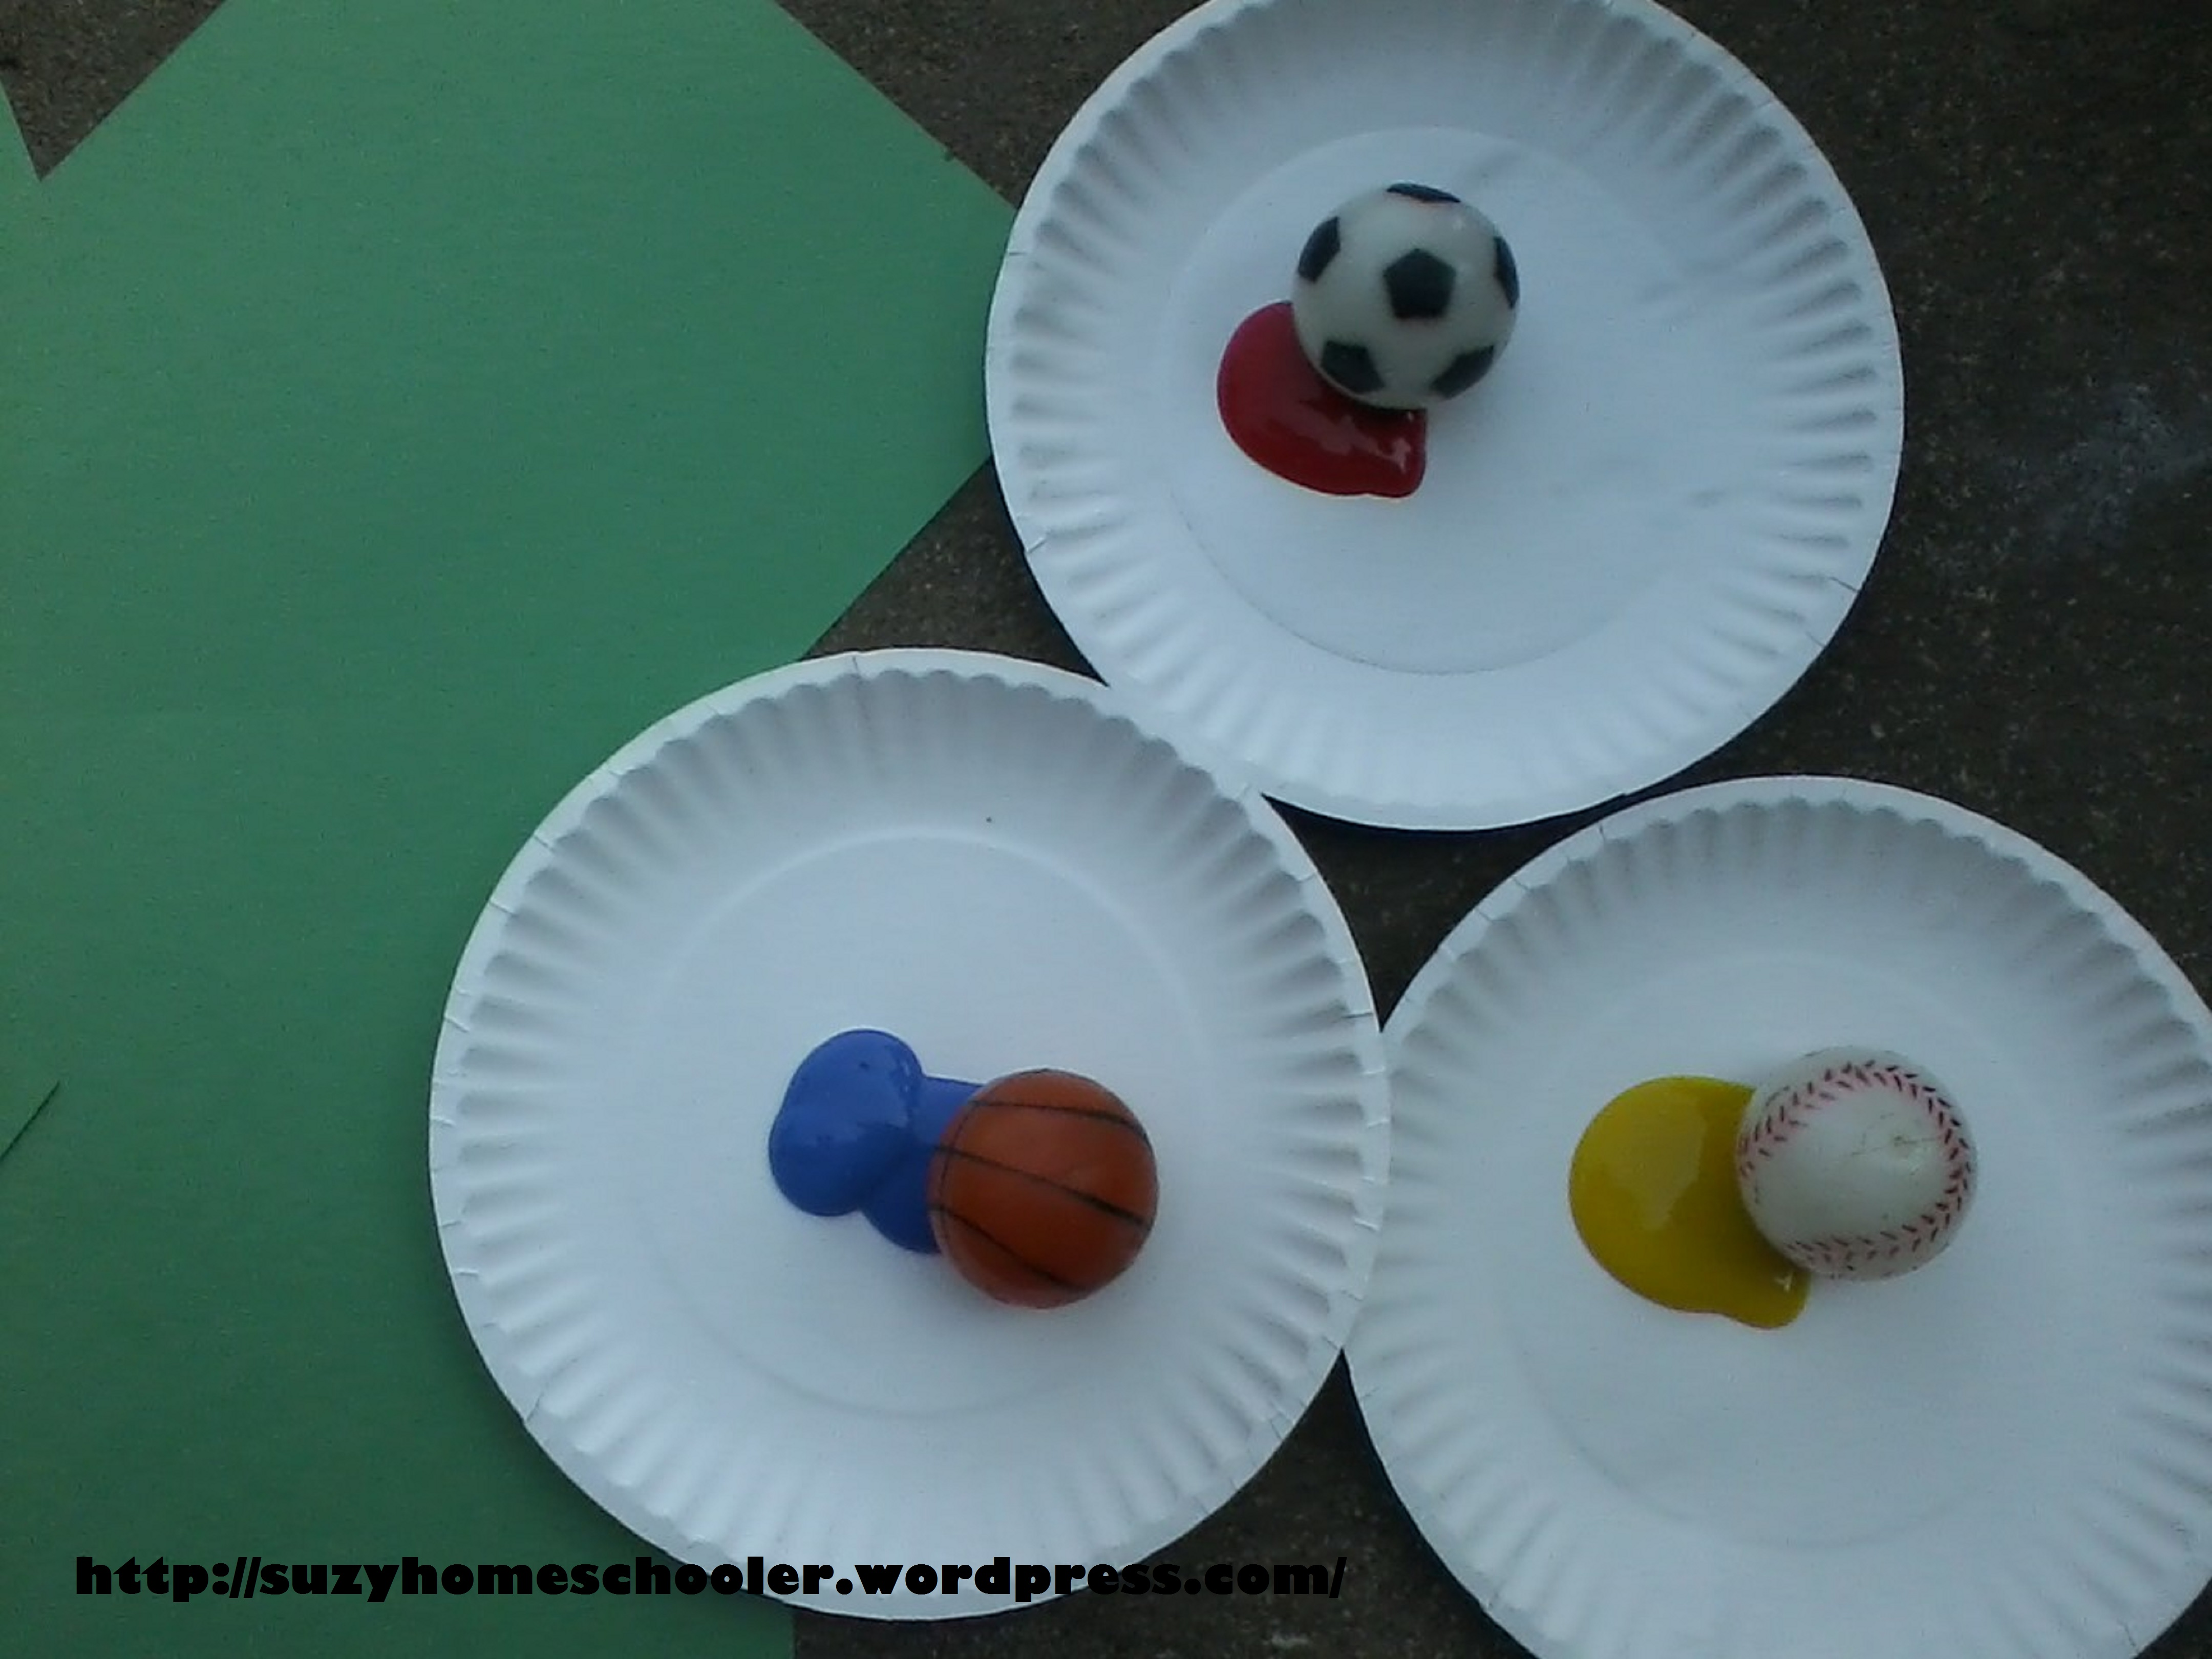 Wrapping Up Sports Theme Week And Ball Bounce Painting